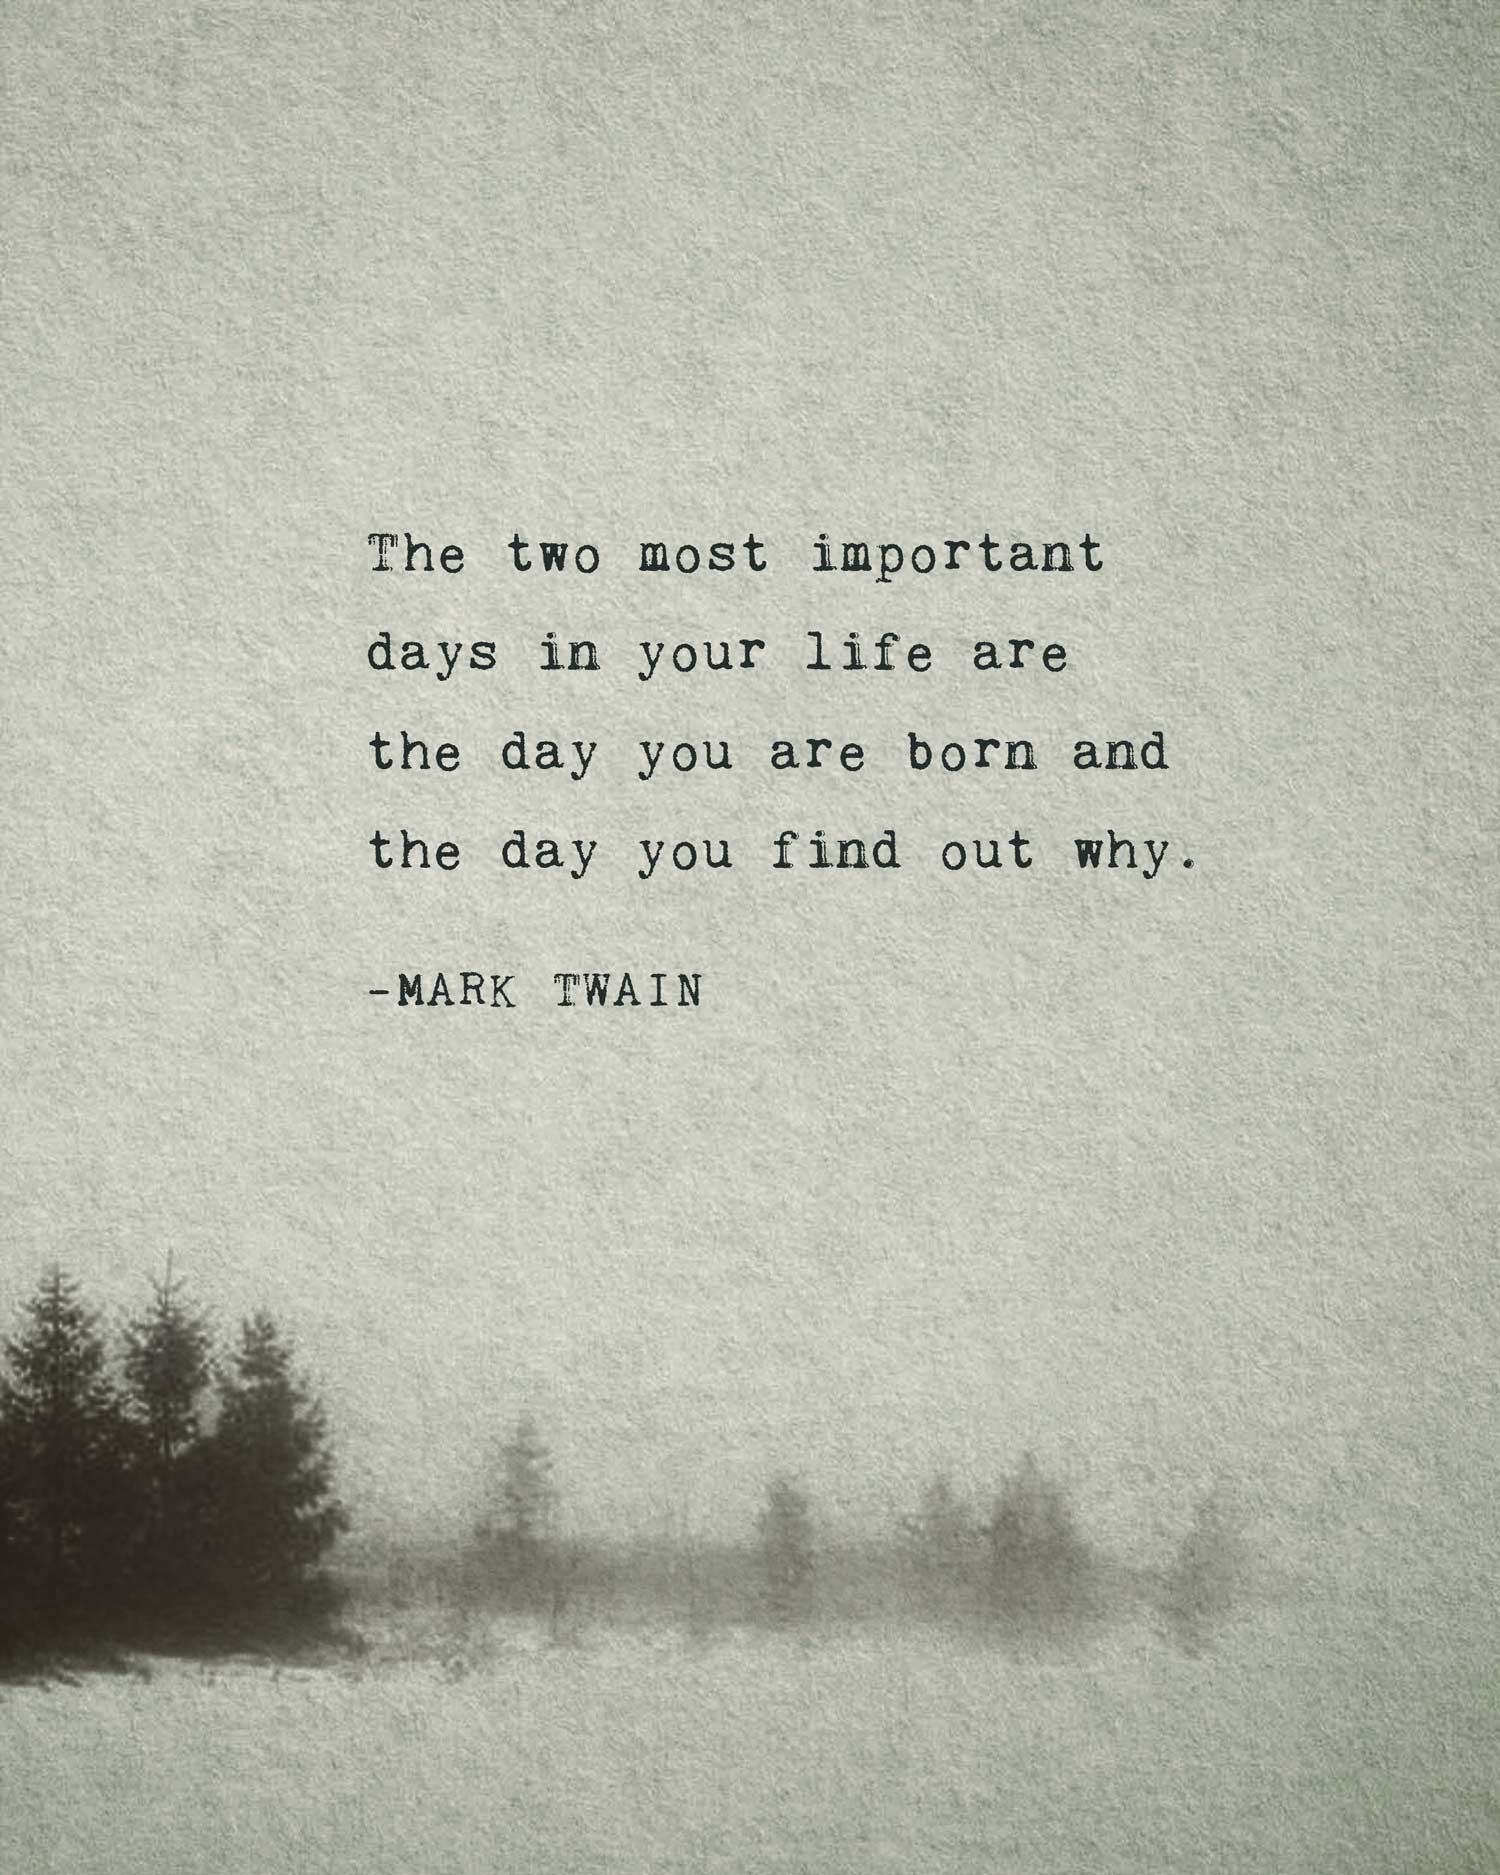 Mark Twain Quote The Two Most Important Days In Your Life Etsy In 2021 Mark Twain Quotes Intelligence Quotes Path Quotes